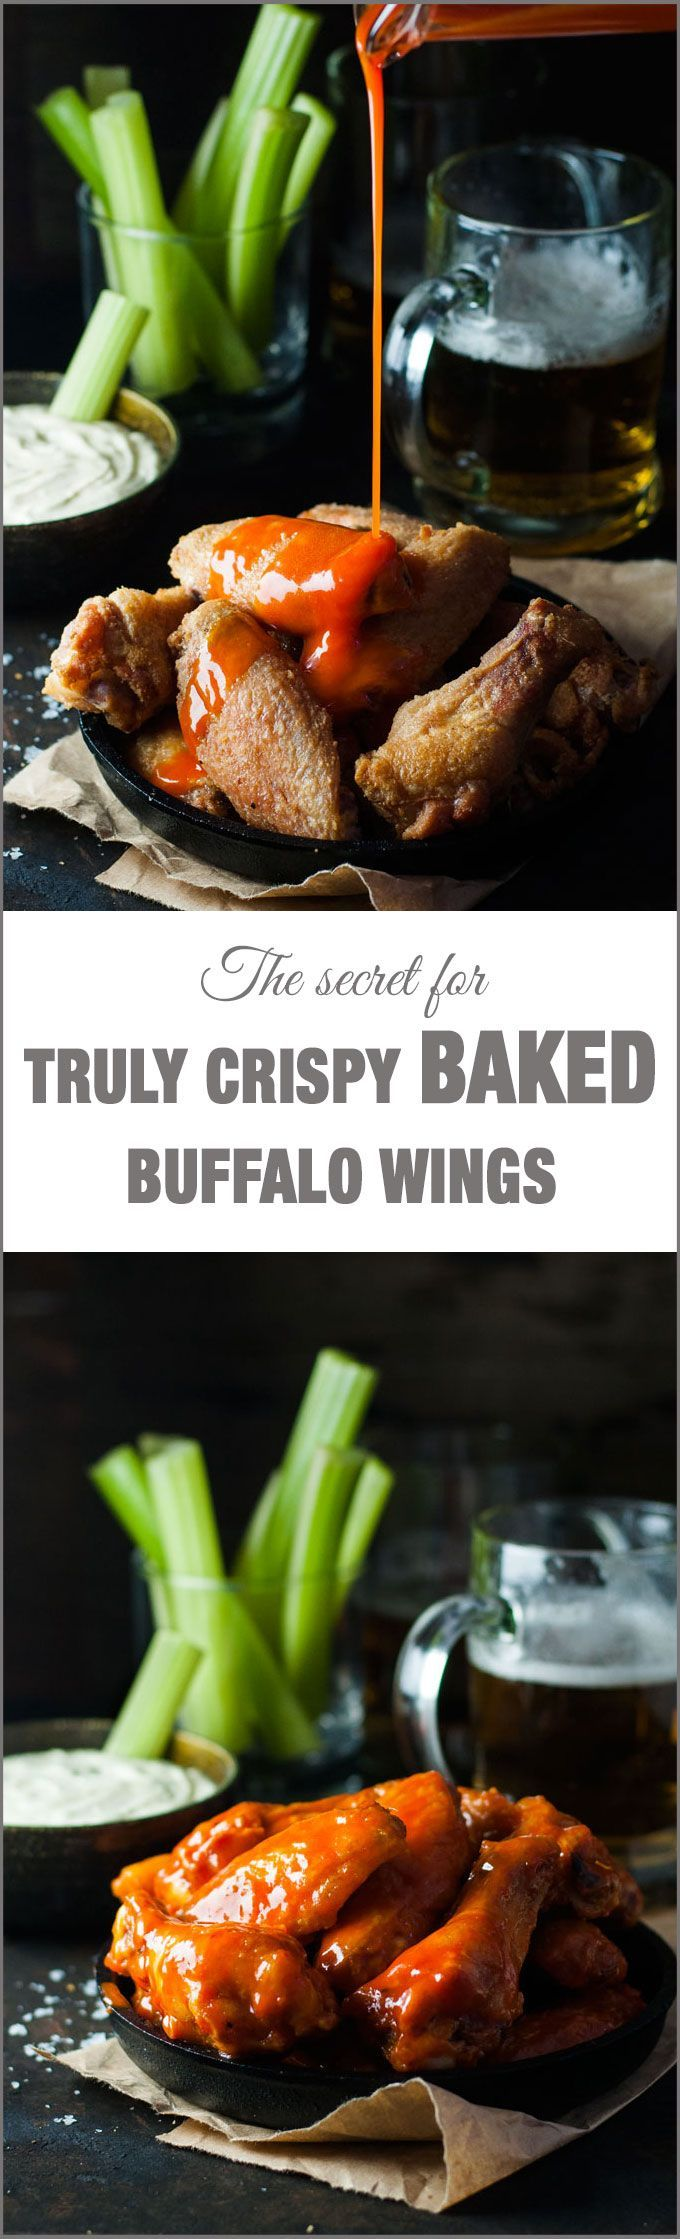 Check out Truly Crispy Oven Baked Buffalo Wings. It's so easy to make ...